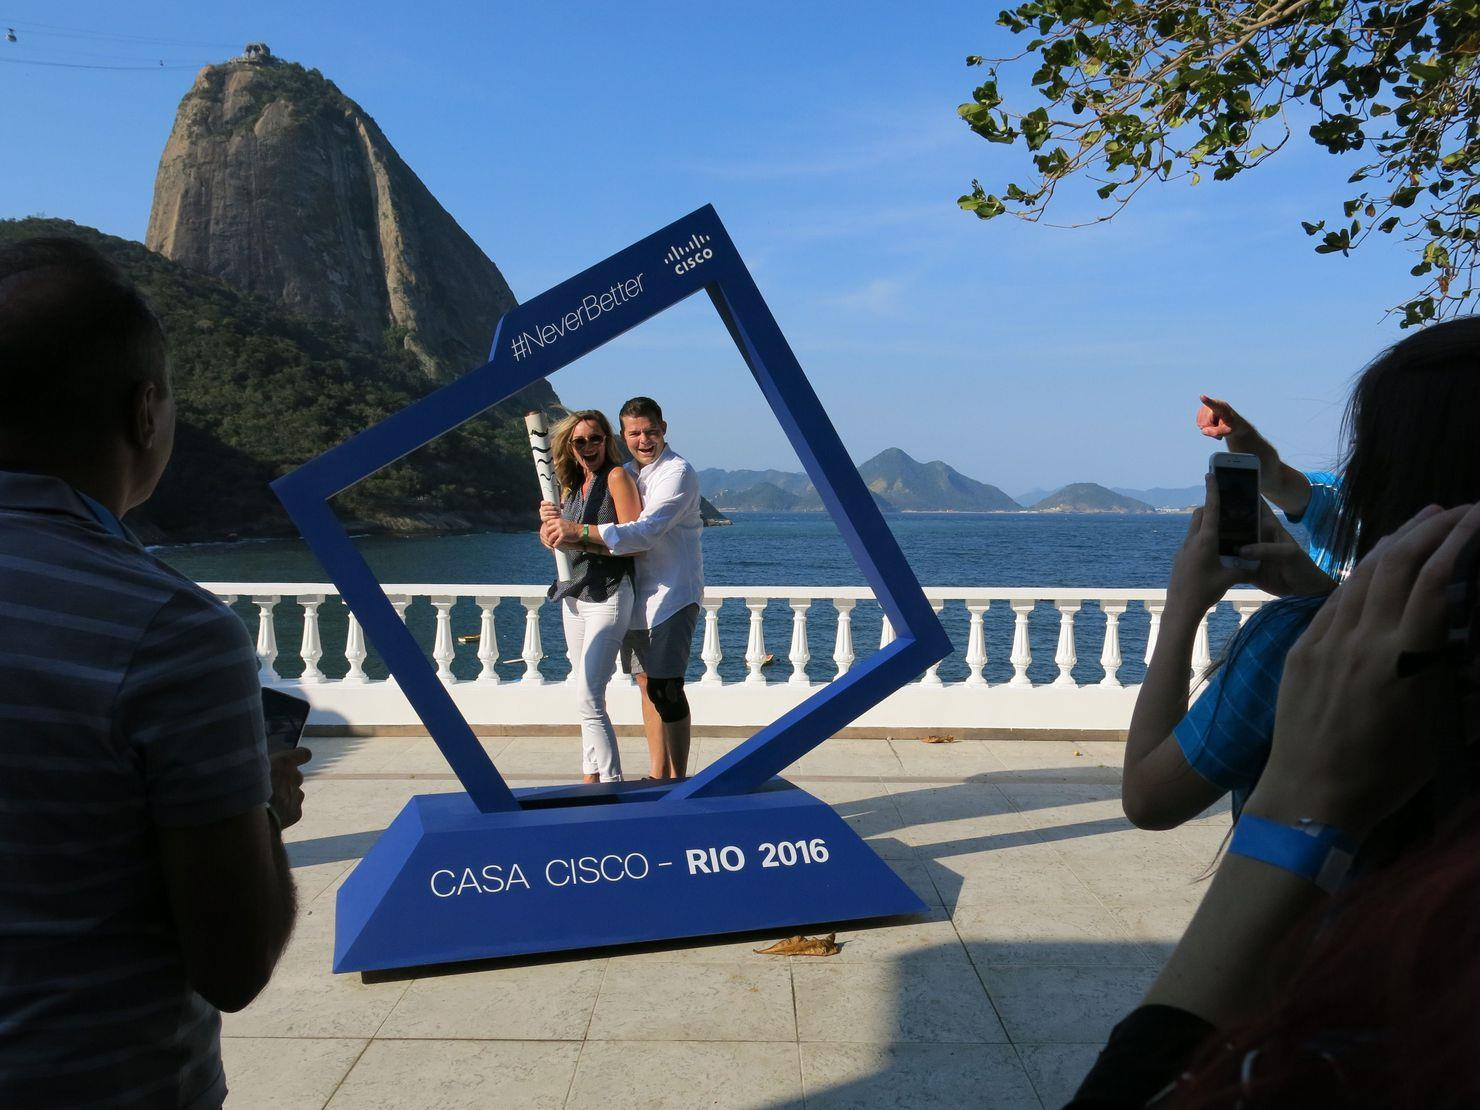 Casa Cisco at Rio Olympics